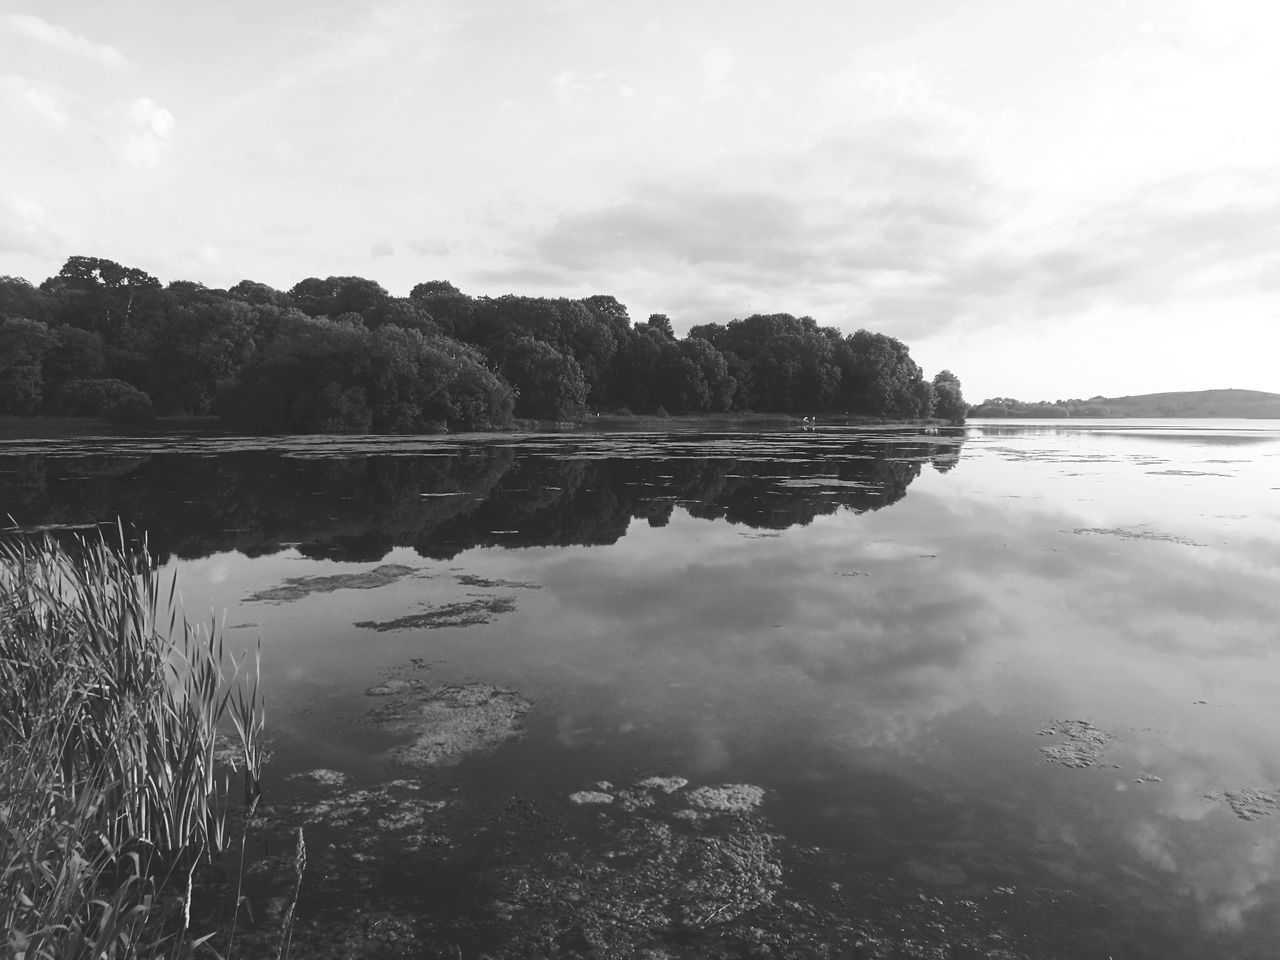 Reflection Water Lake Sky Tree Tranquility Outdoor Pursuit Nature Day Scenics Cloud - Sky Landscape Outdoors Beauty In Nature No People Black And White